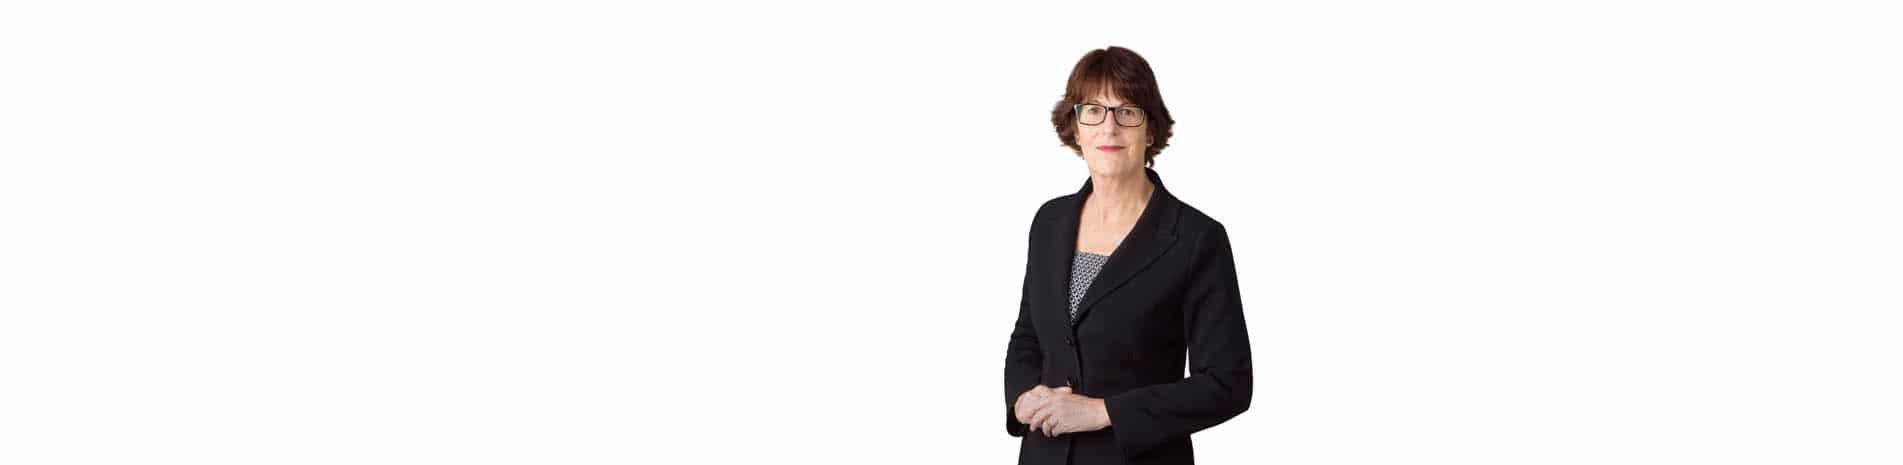 wendy gibbon traffic lawyer Melbourne